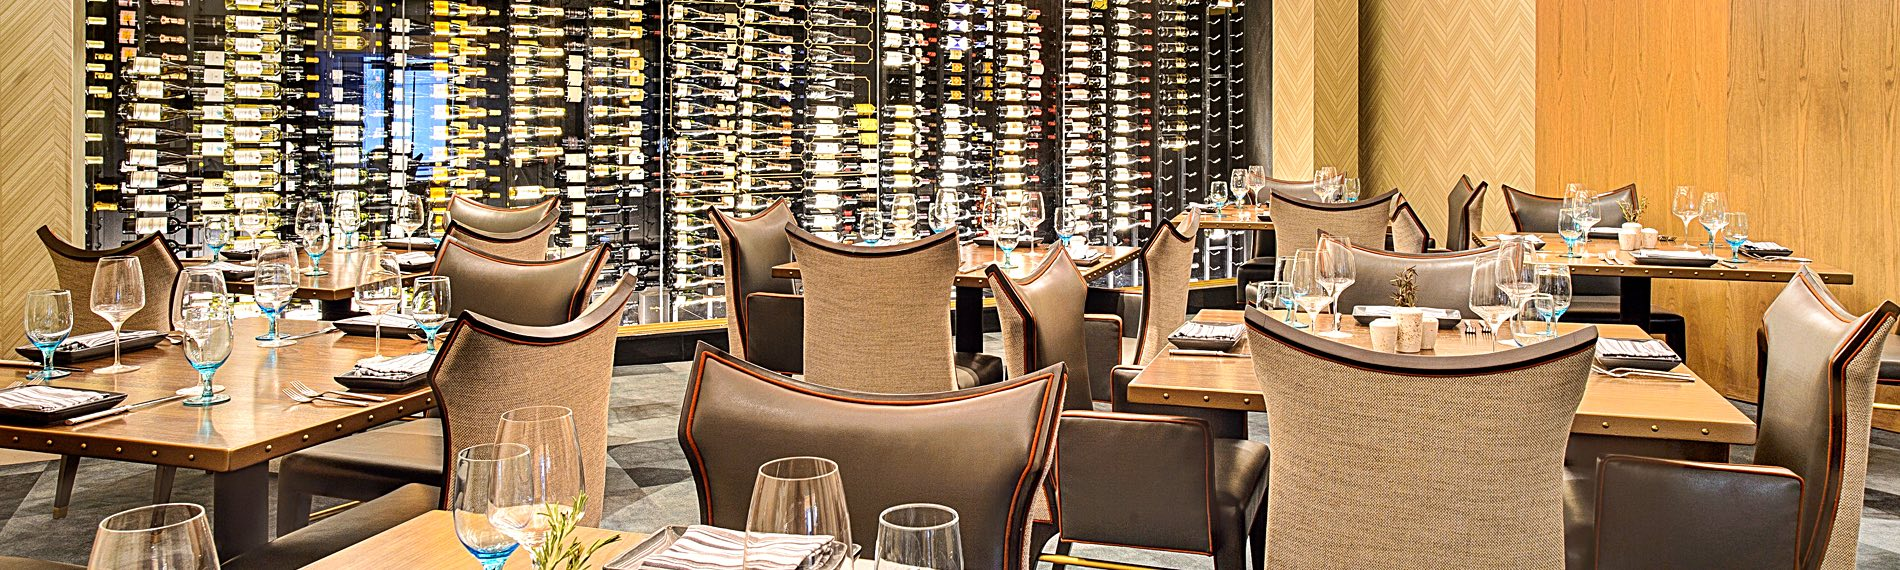 Restaurant dining tables set with a large wine cellar on the back wall